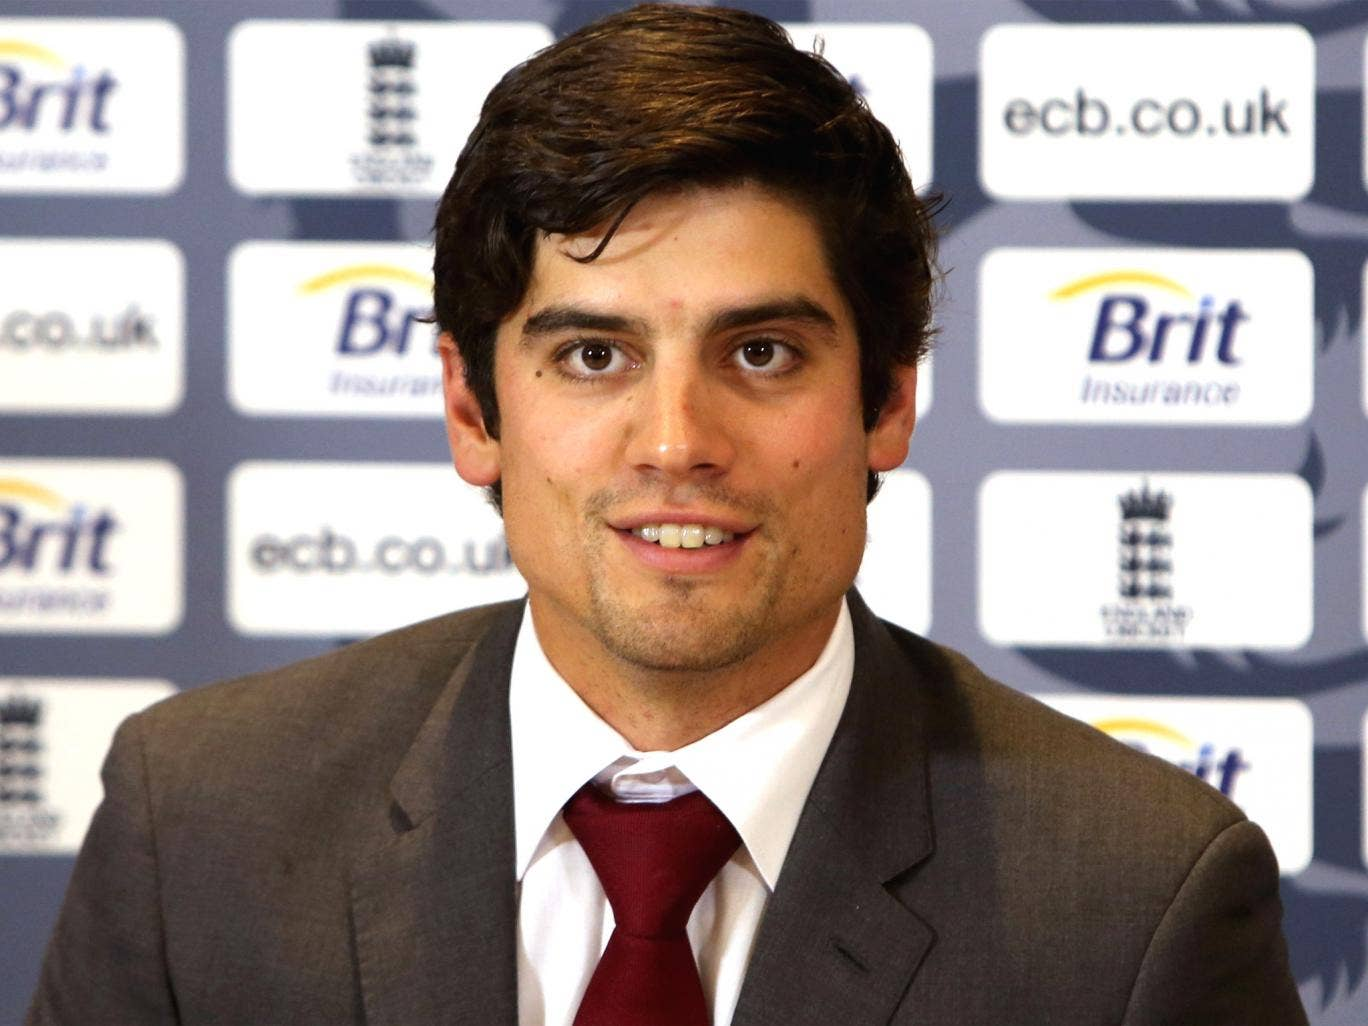 Alastair Cook is looking forward to working with father figure on England's forthcoming one-day tour